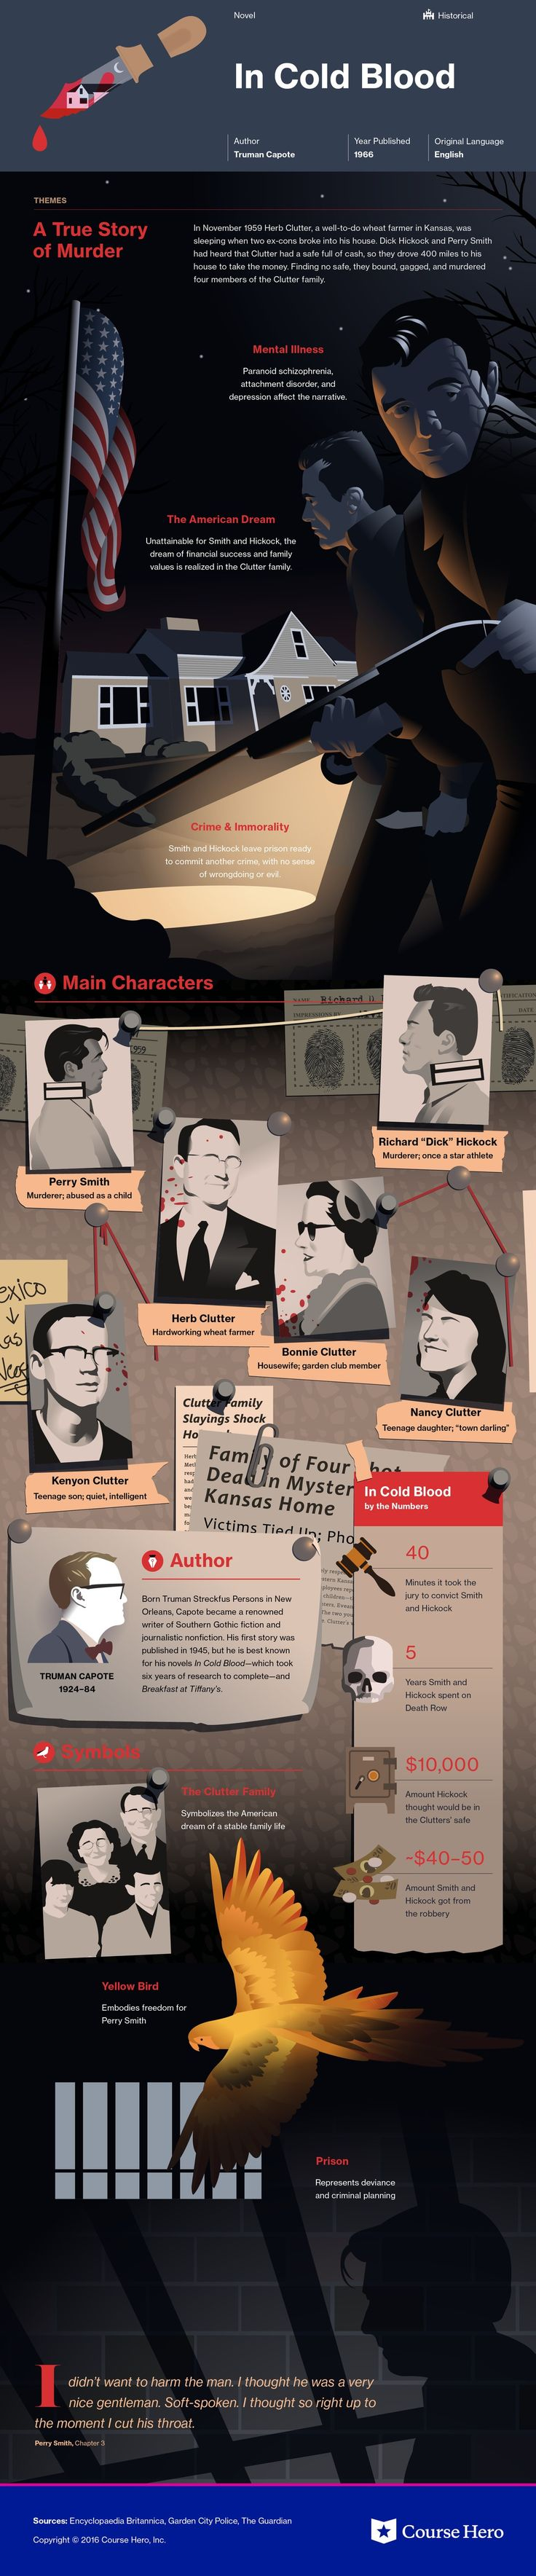 An info graph that provides some brief and basic details about the true story of the Clutter family murders. An american flag is used on it.